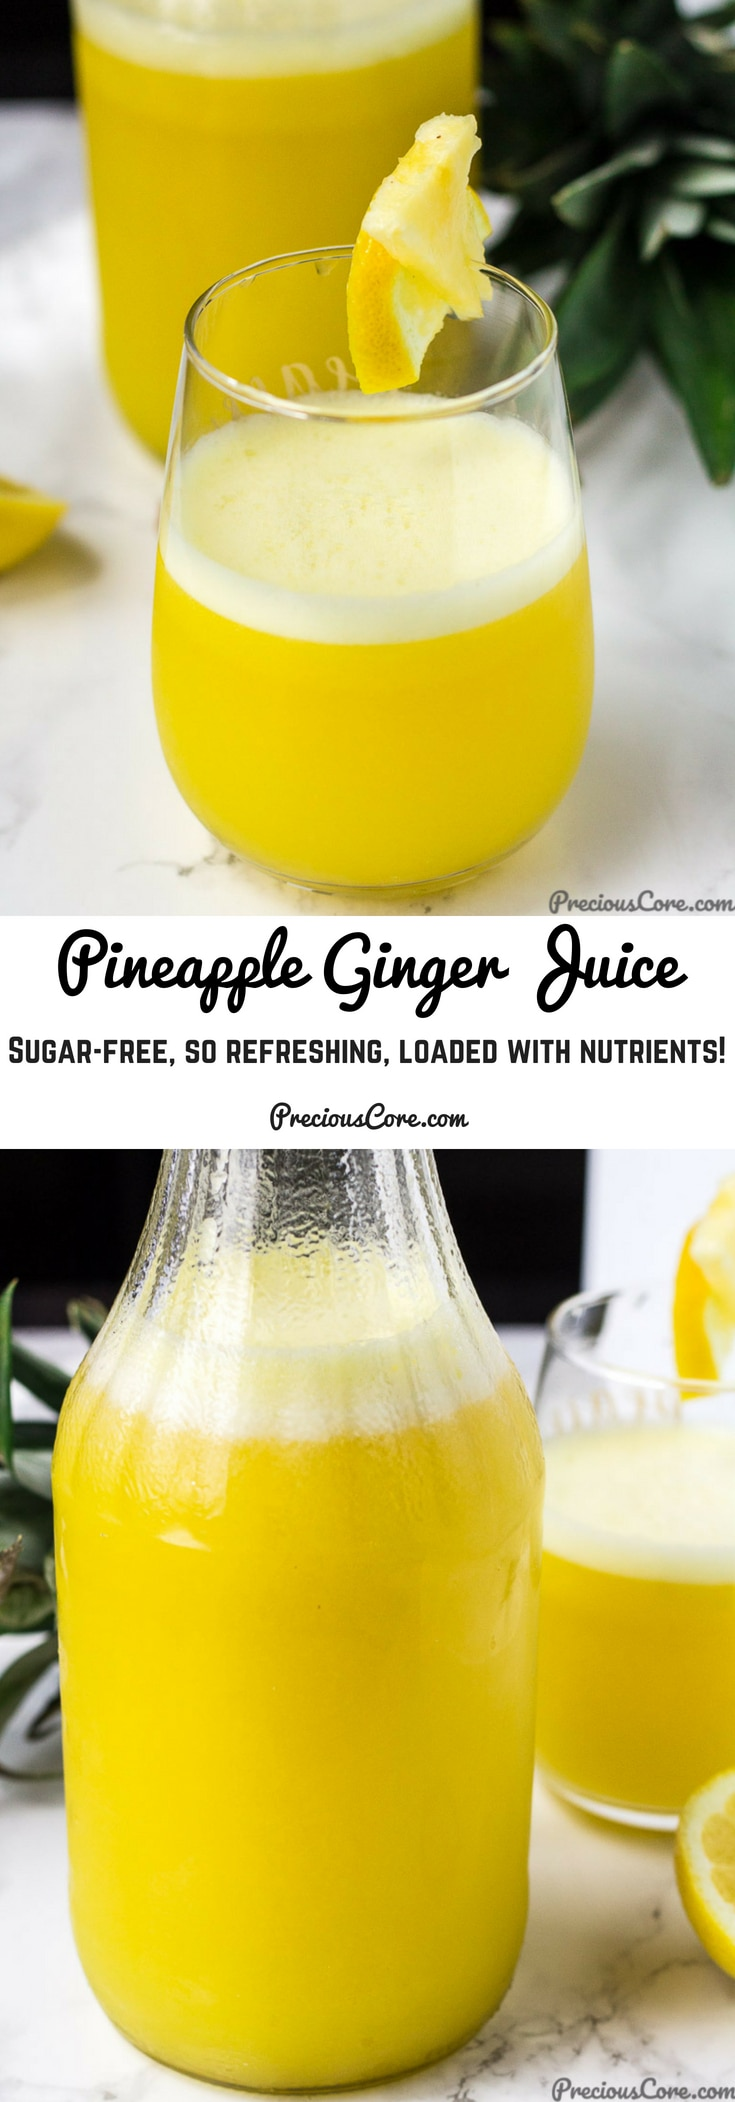 Refreshing Pineapple Ginger Juice! I feel like drinking the whole batch each time I make this,. So fruity, sweet (with no added sugar!), nutrient-dense and perfect for summer! Enjoy, friends! Get the recipe on Precious Core. #Drinks #Juices #Summer